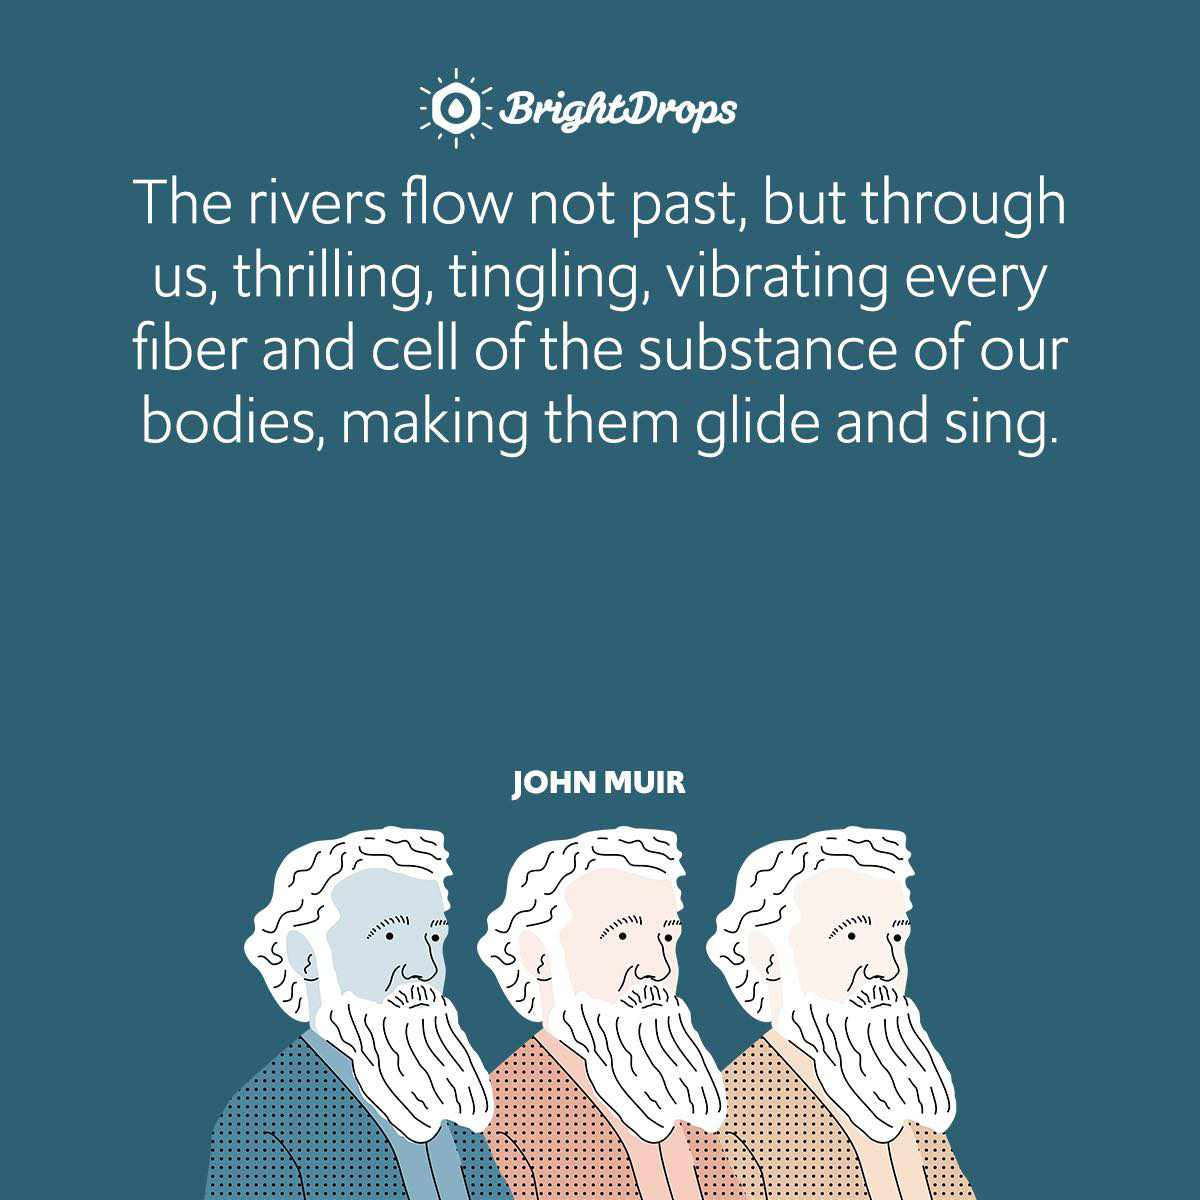 The rivers flow not past, but through us, thrilling, tingling, vibrating every fiber and cell of the substance of our bodies, making them glide and sing.